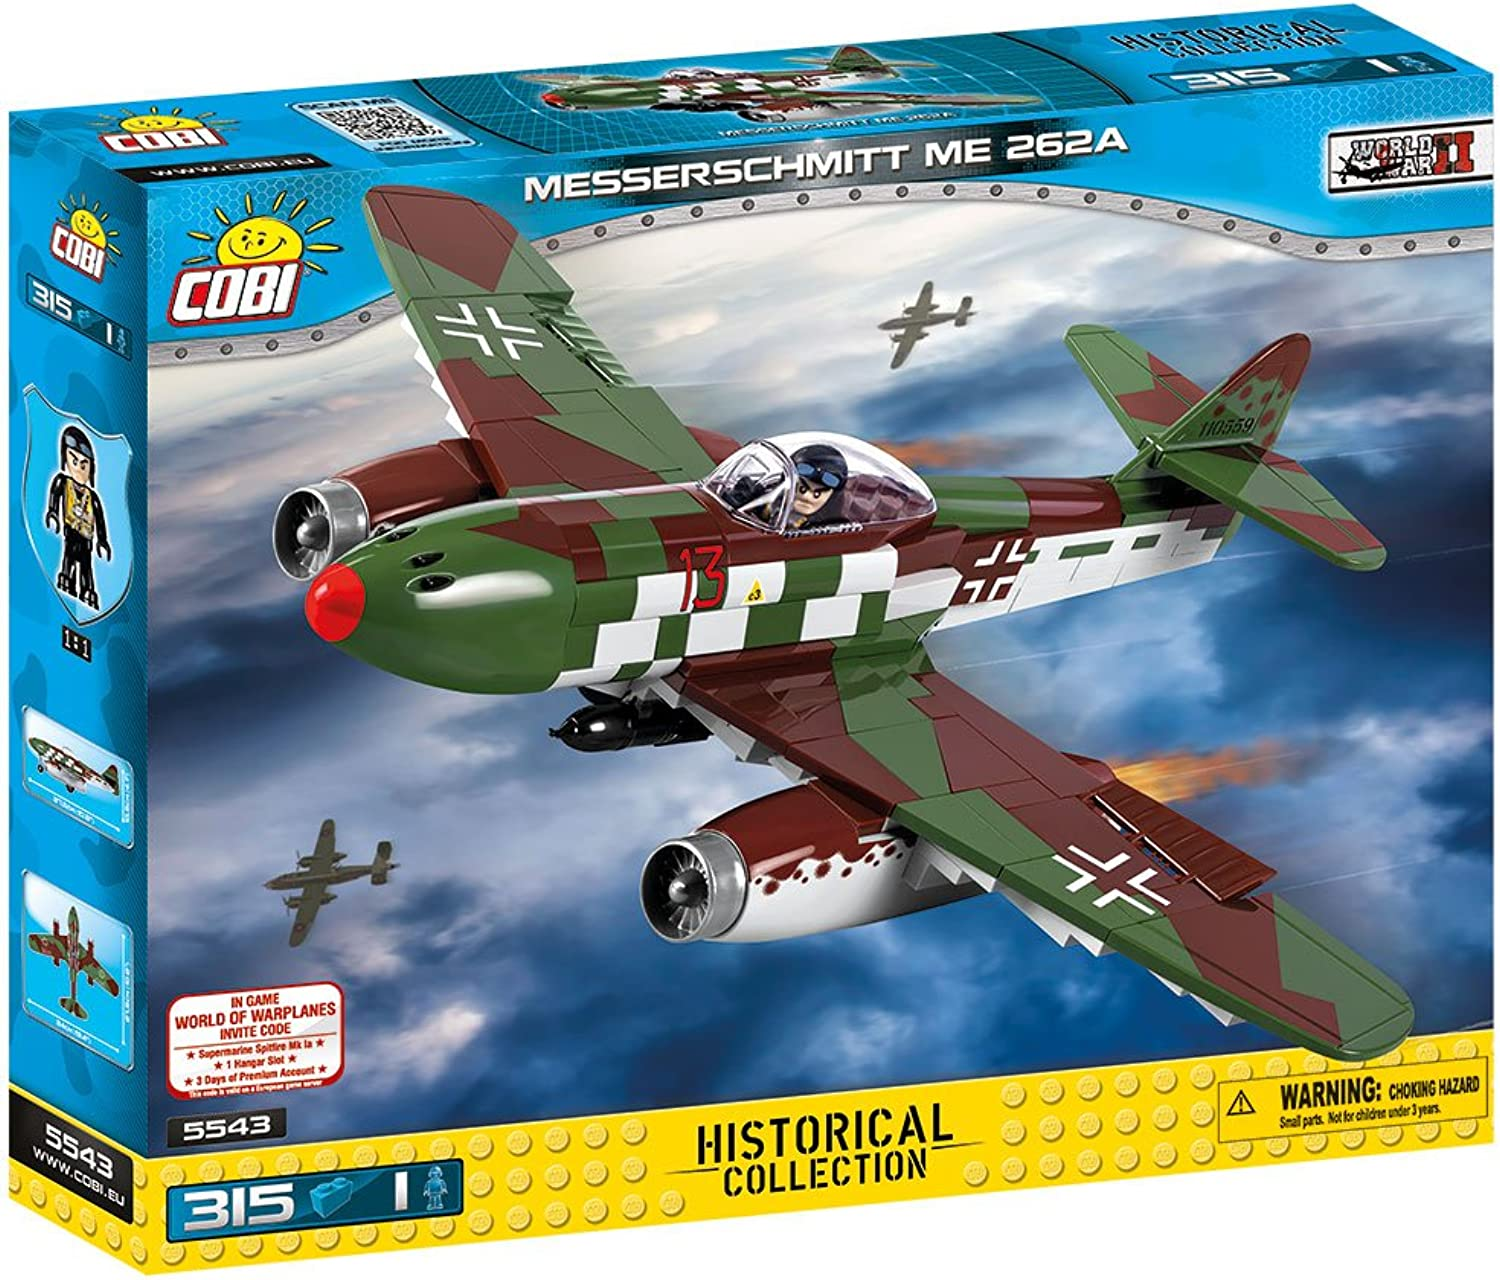 COBI Small Army Messerschmitt Me Building Kit, Multicolor